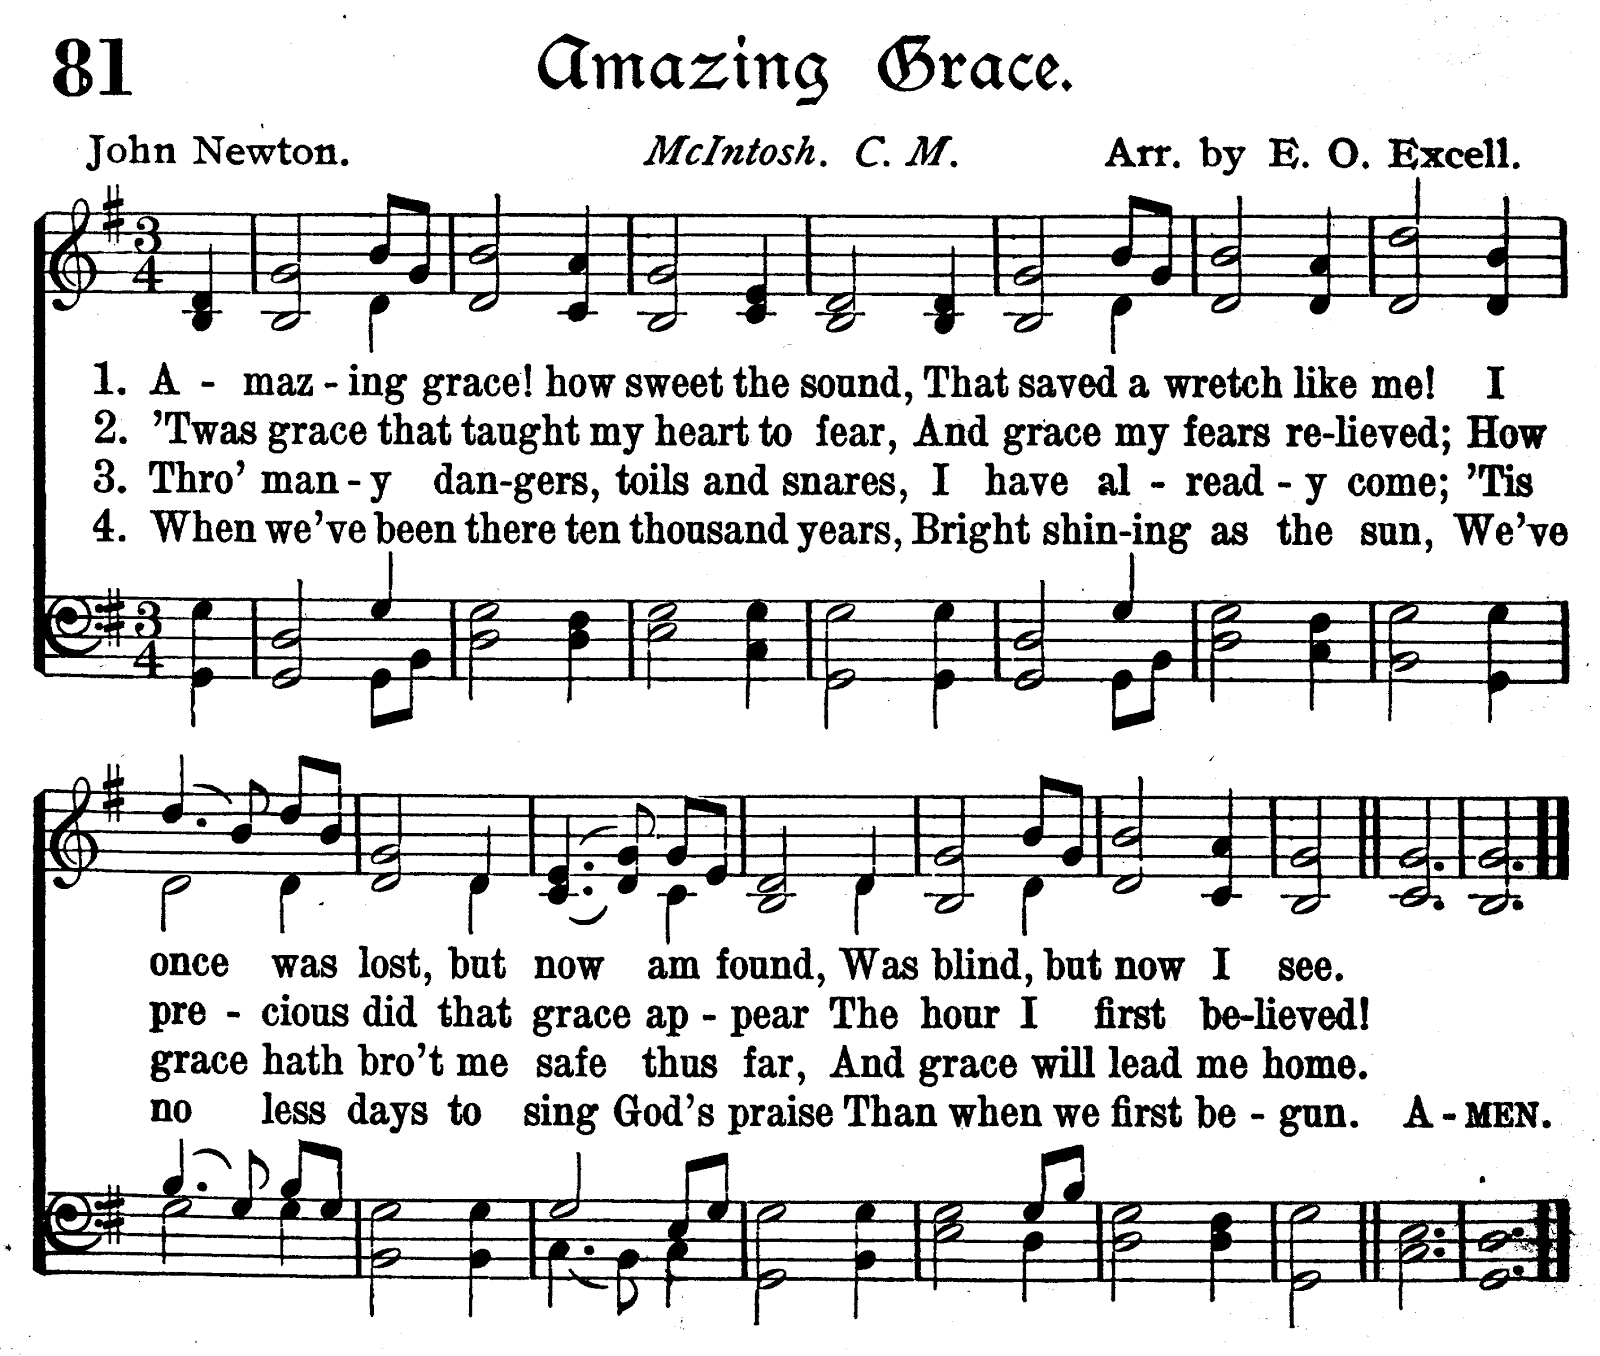 Amazing Grace Free Piano Sheet Music With Lyrics: The Sage Book Whisperer: Series 4:Hymn-Lining ~Gaelic